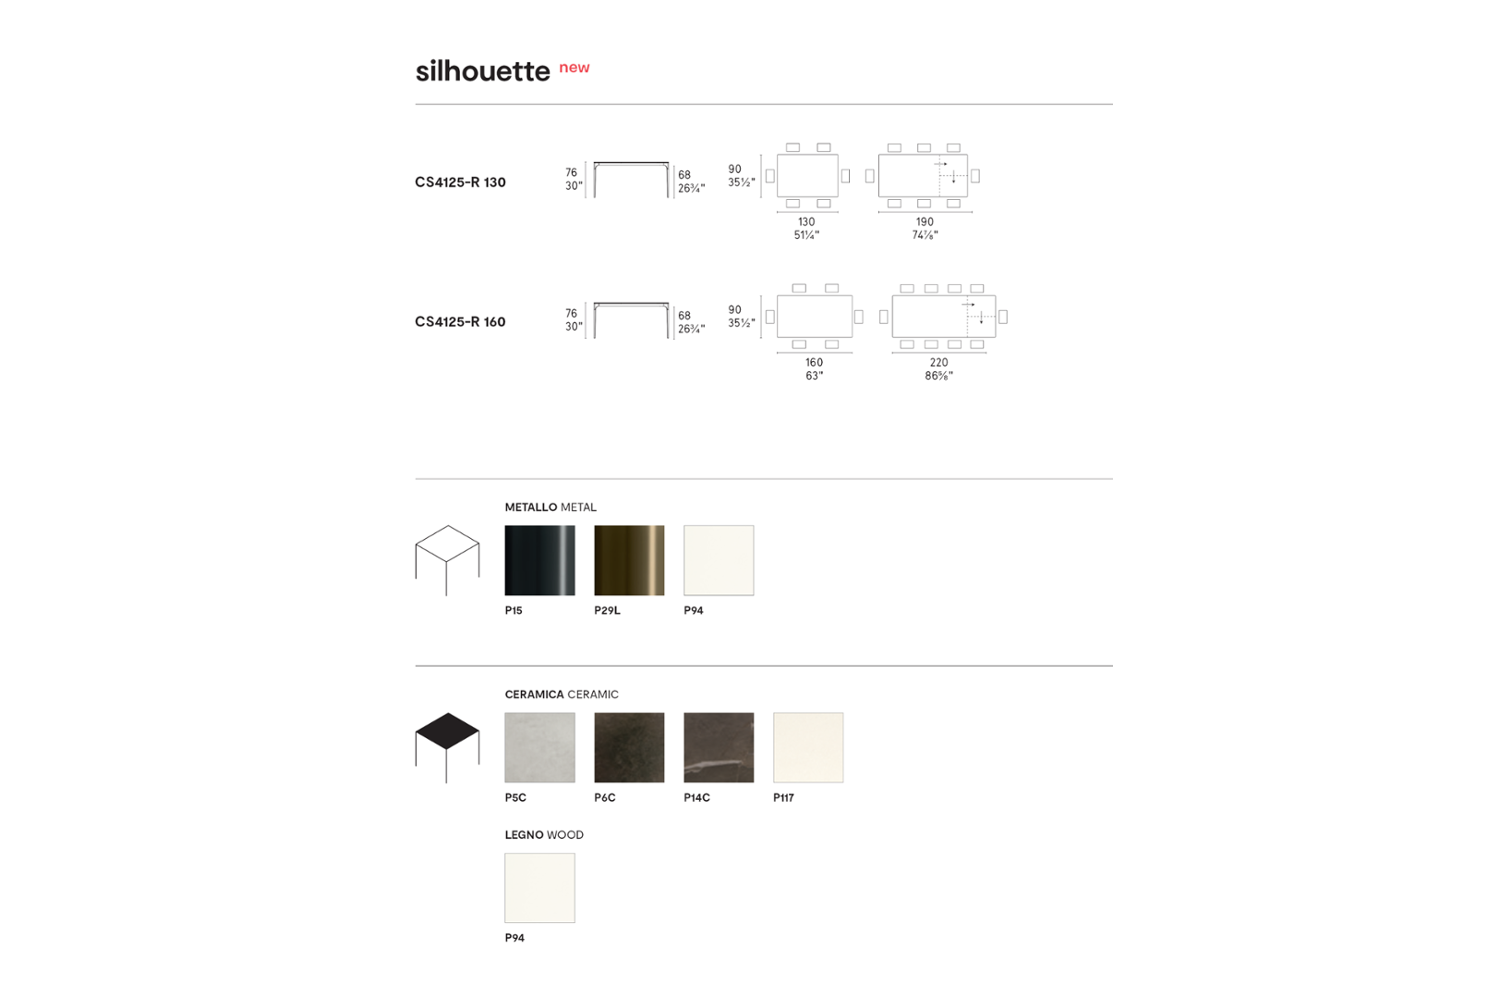 SILHOUETTE TABLE SCHEMATIC CALLIGARIS copy SILHOUETTE-TABLE SCHEMATIC CALLIGARIS copy.png CALLIGARIS DINING EXTENSION TABLES CERAMIC GLASS